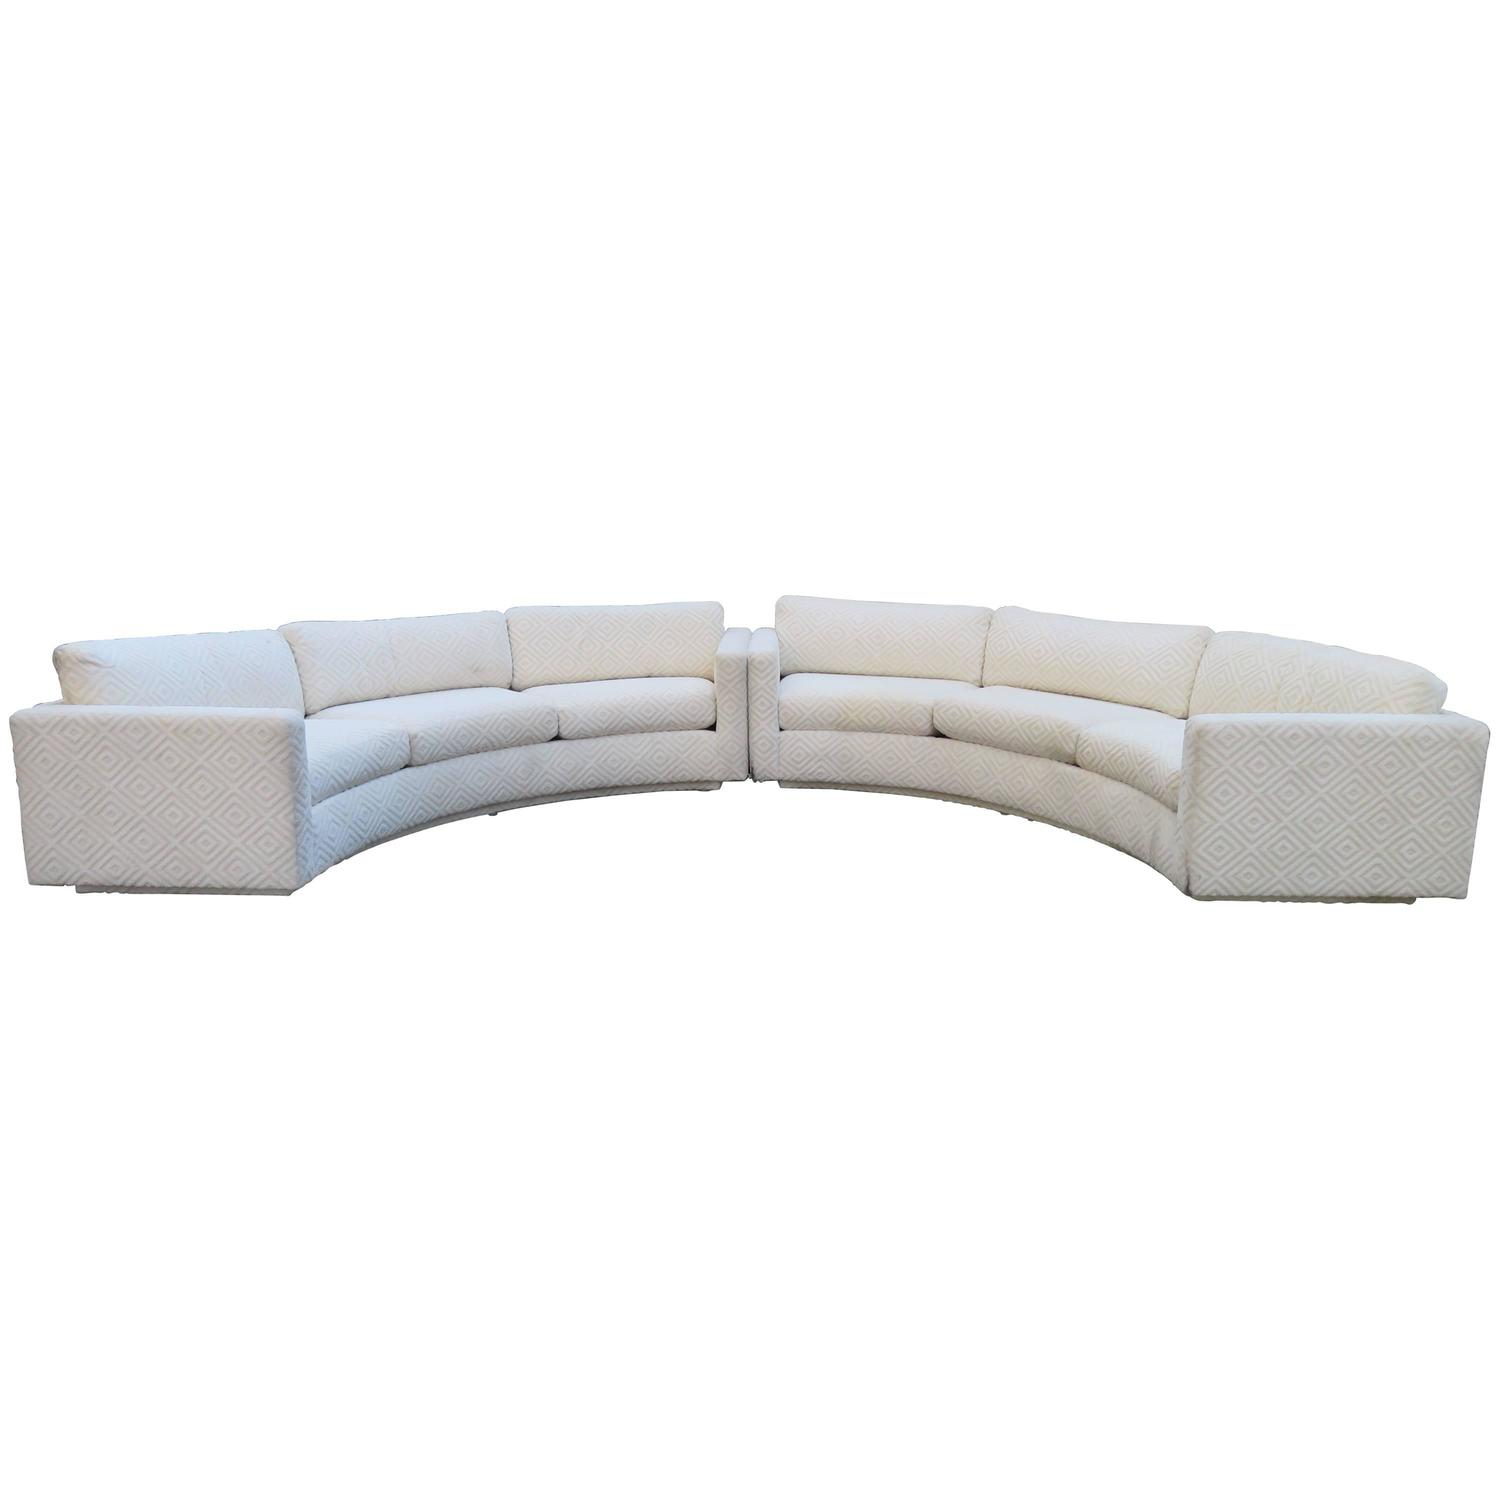 Fabulous two piece milo baughman circular sectional sofa for 2 piece curved sectional sofa